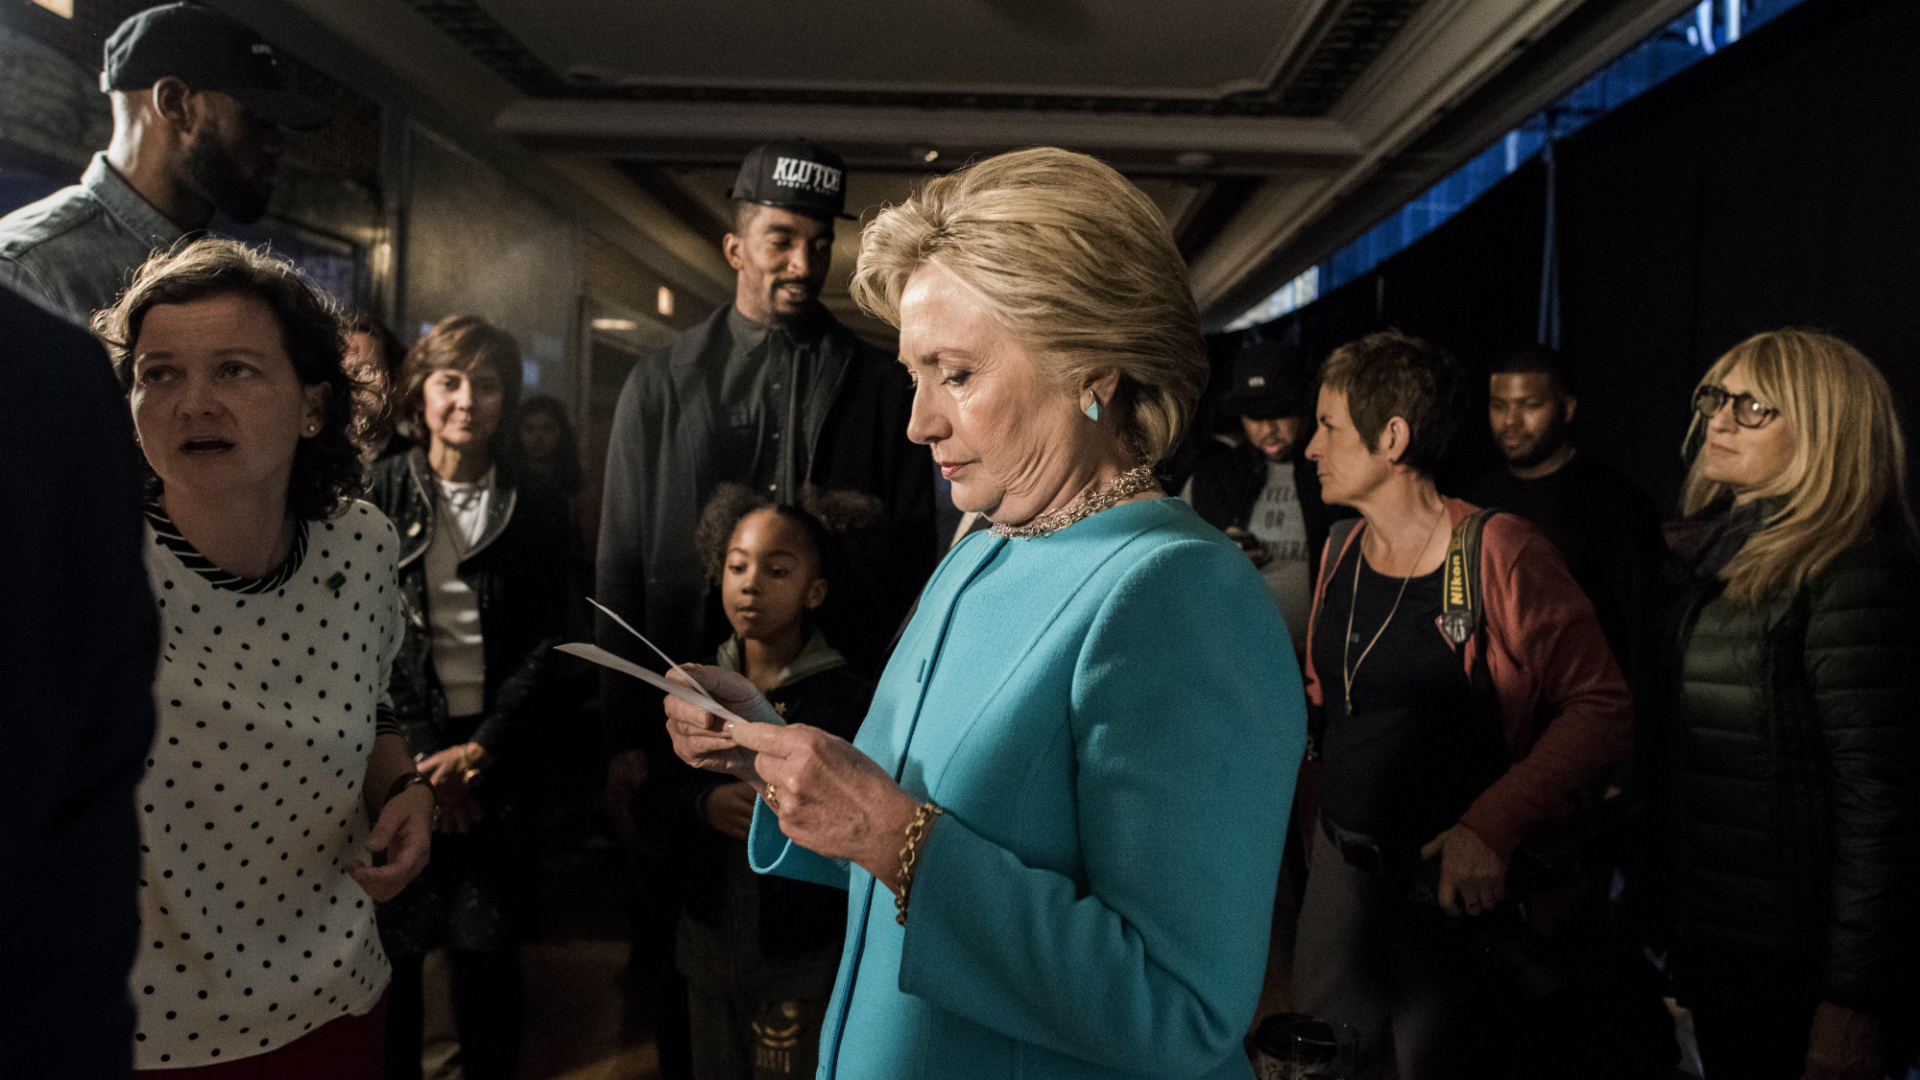 9 days after roiling campaign, FBI says it won't seek charges against Clinton